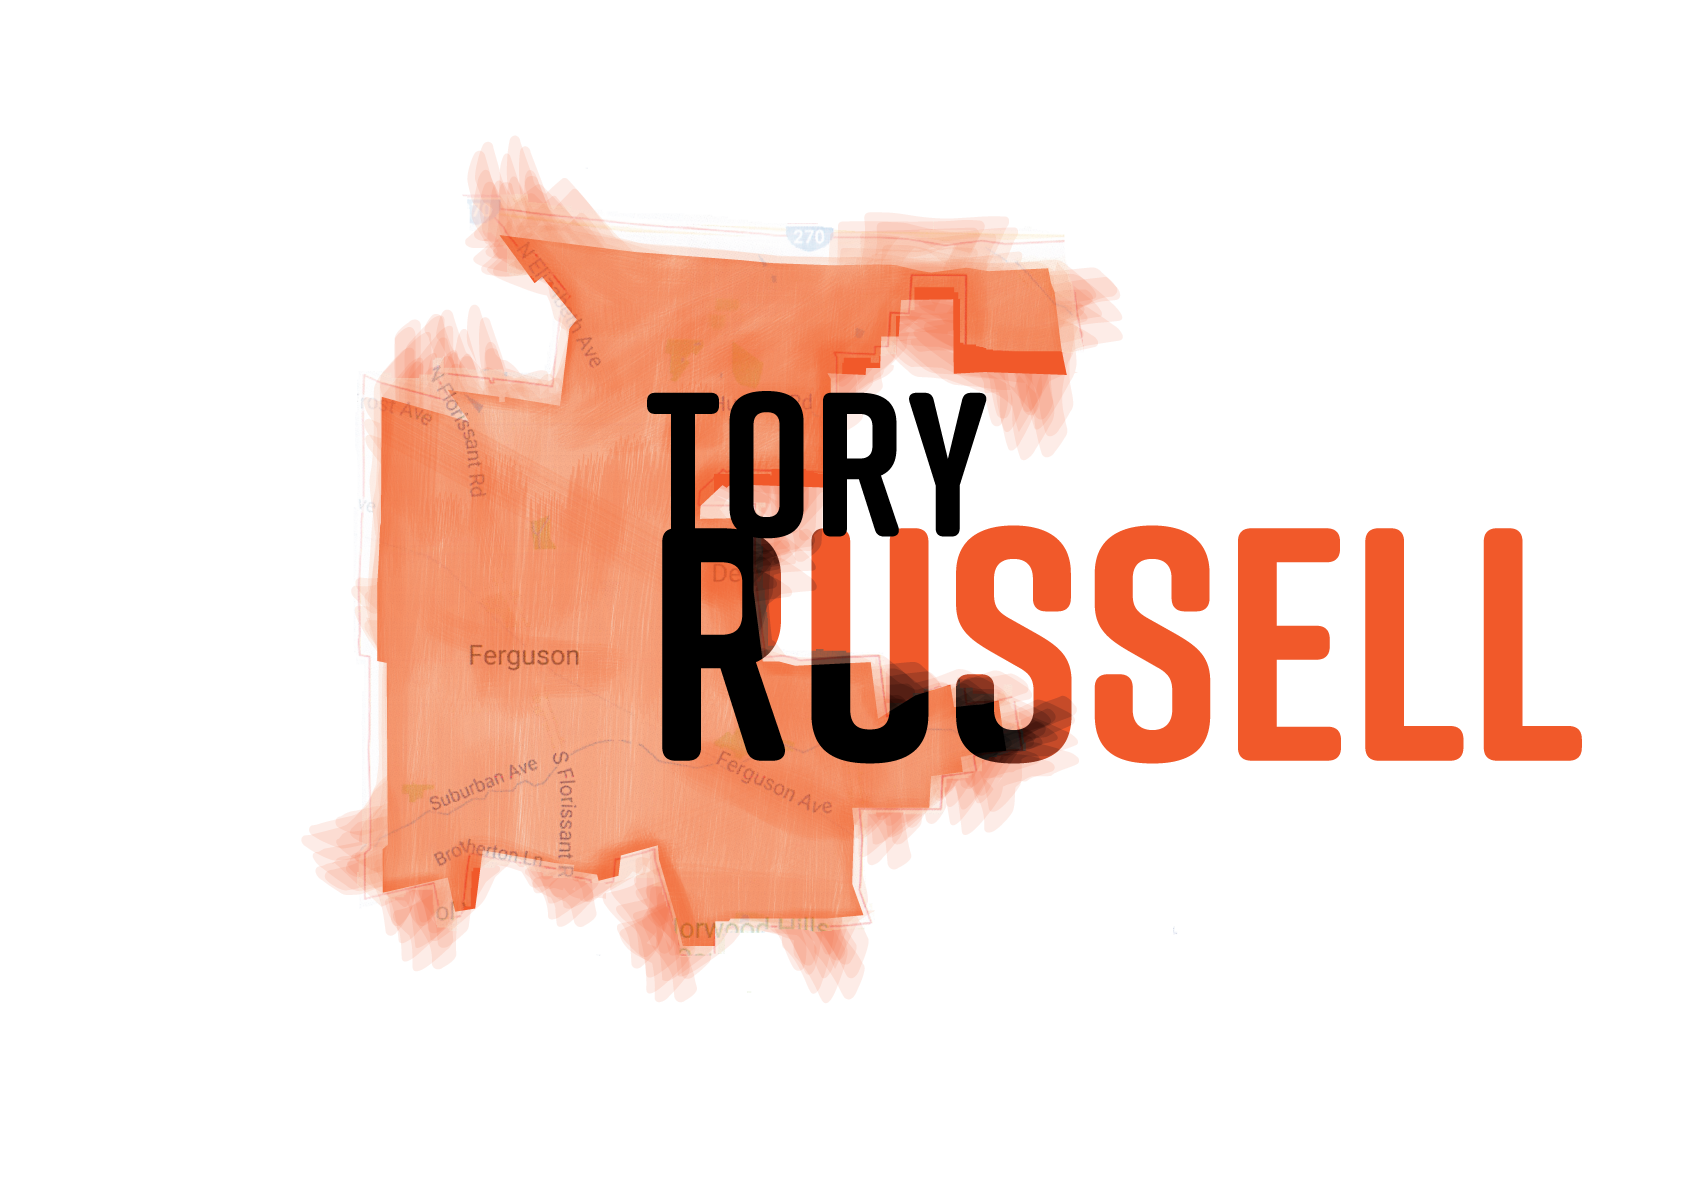 TORY RUSSELL.png